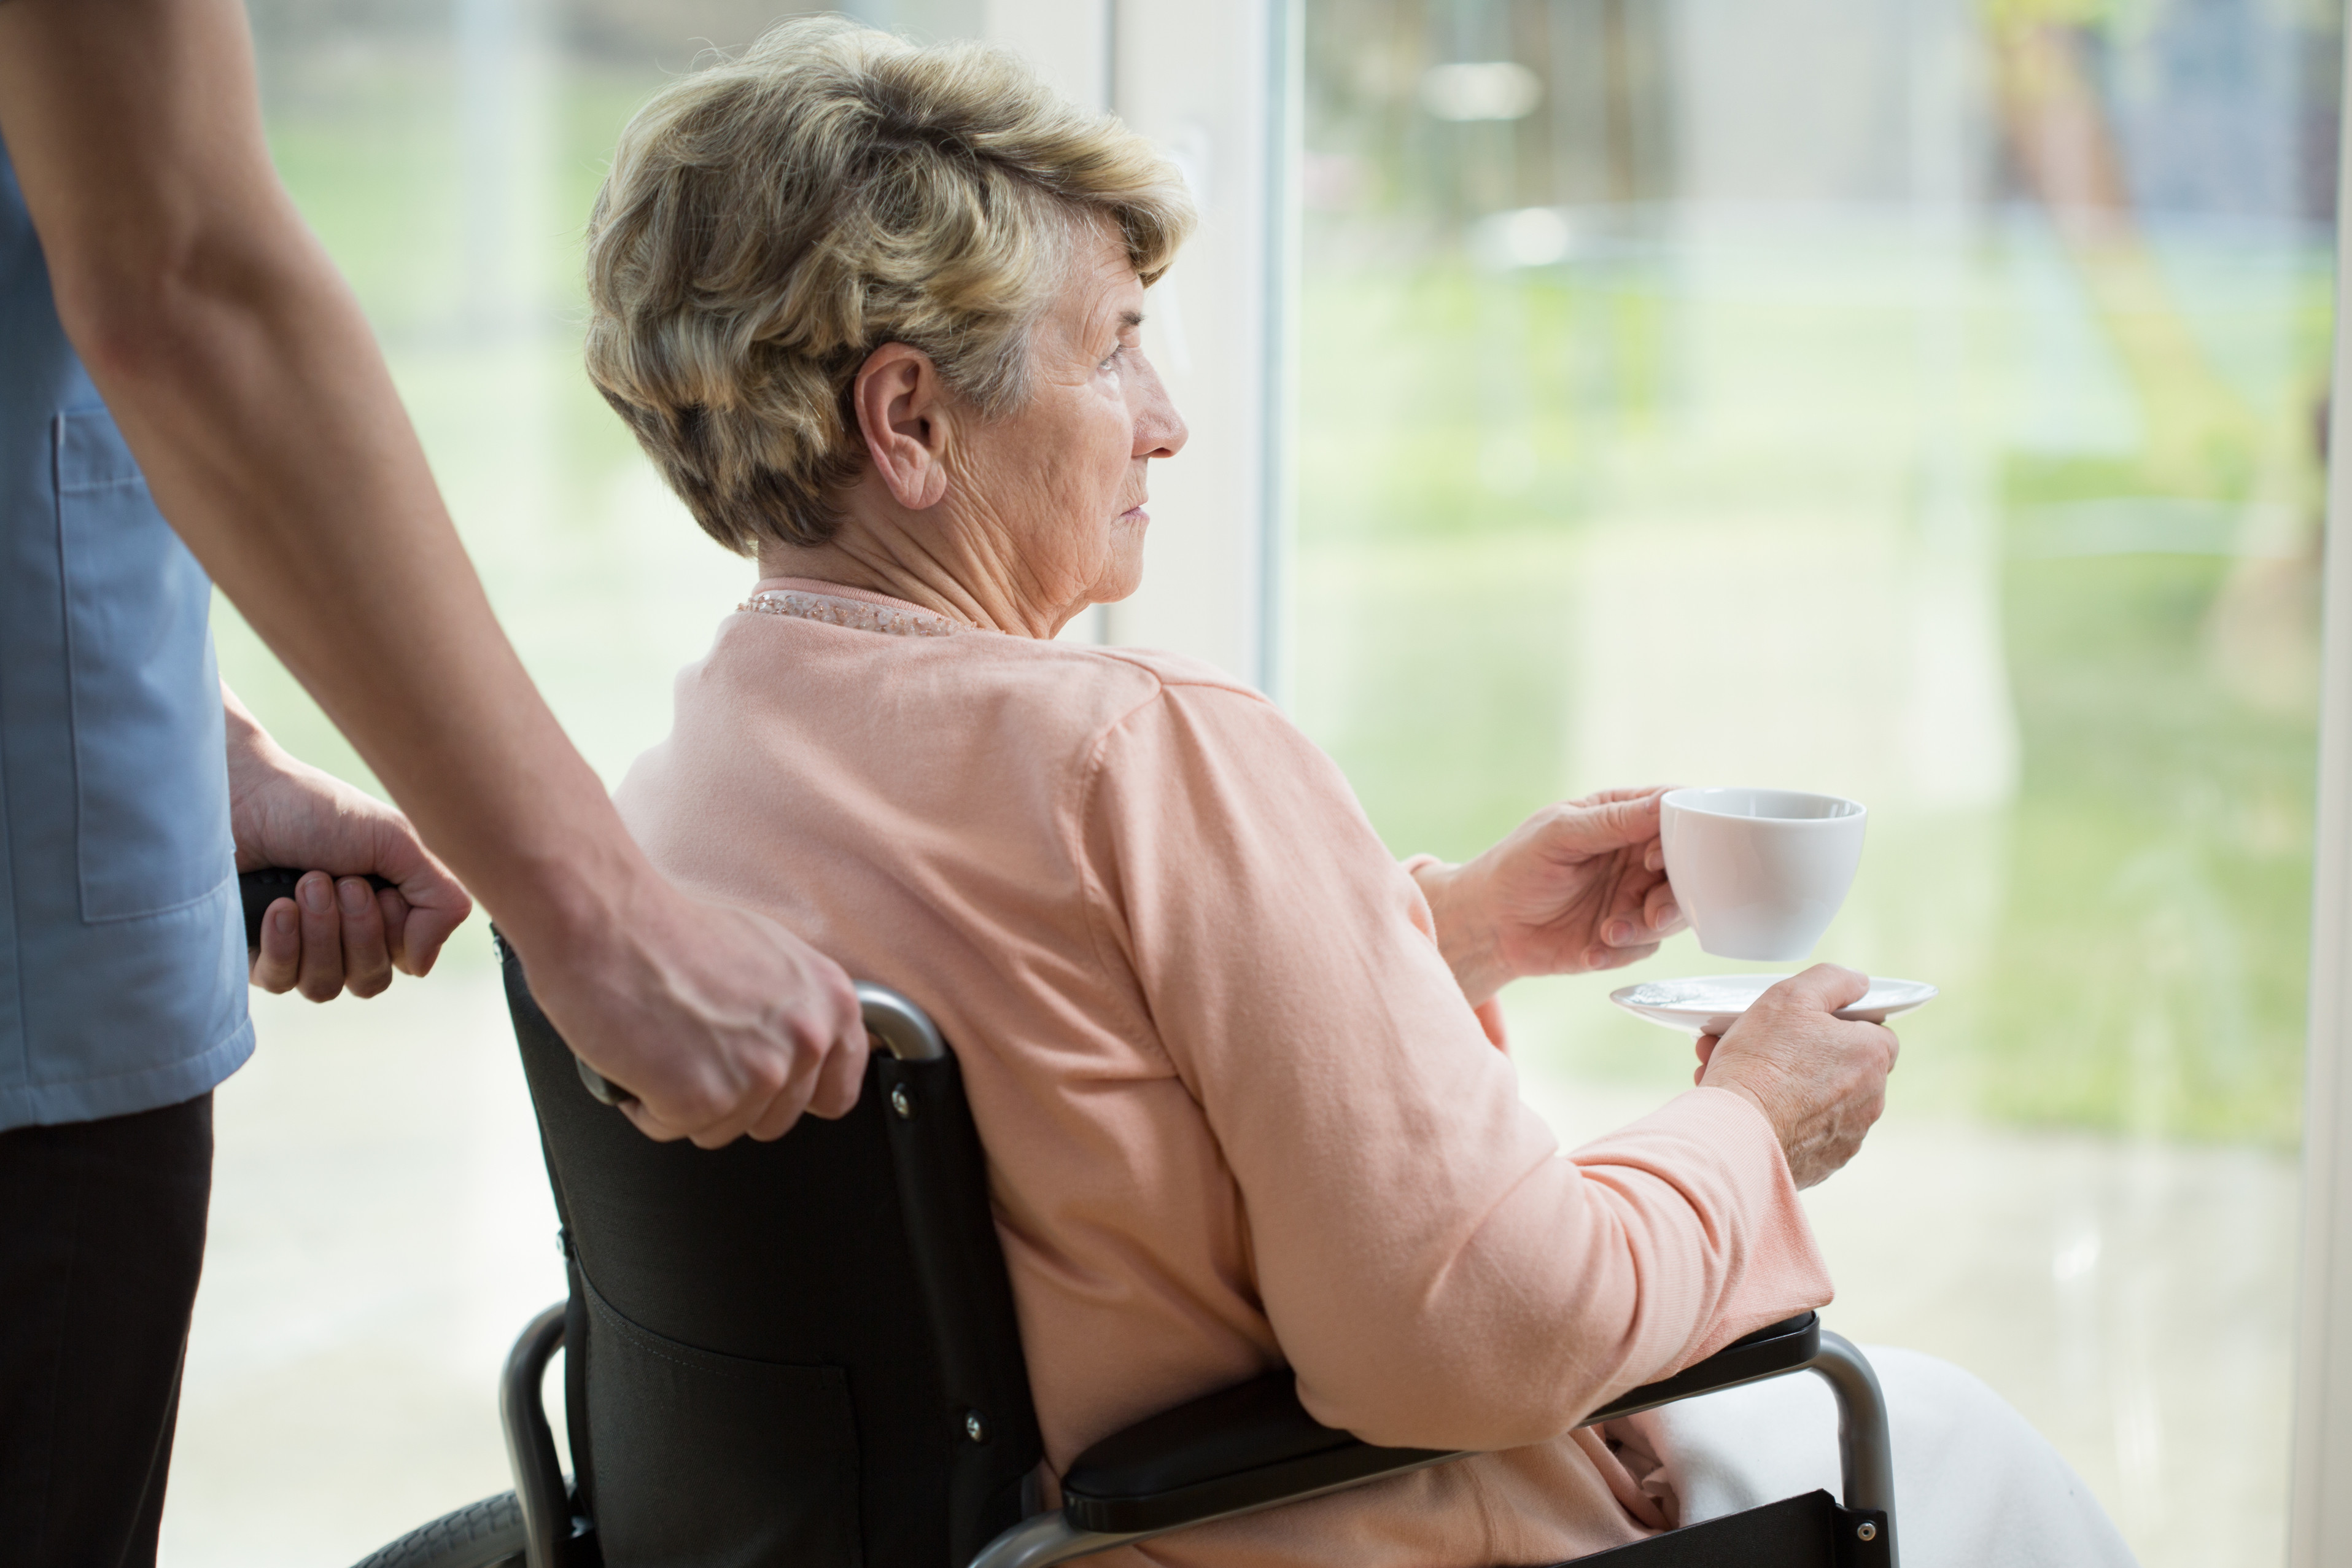 Raises for Connecticut's unionized personal care assistants pits the state against private home care providers